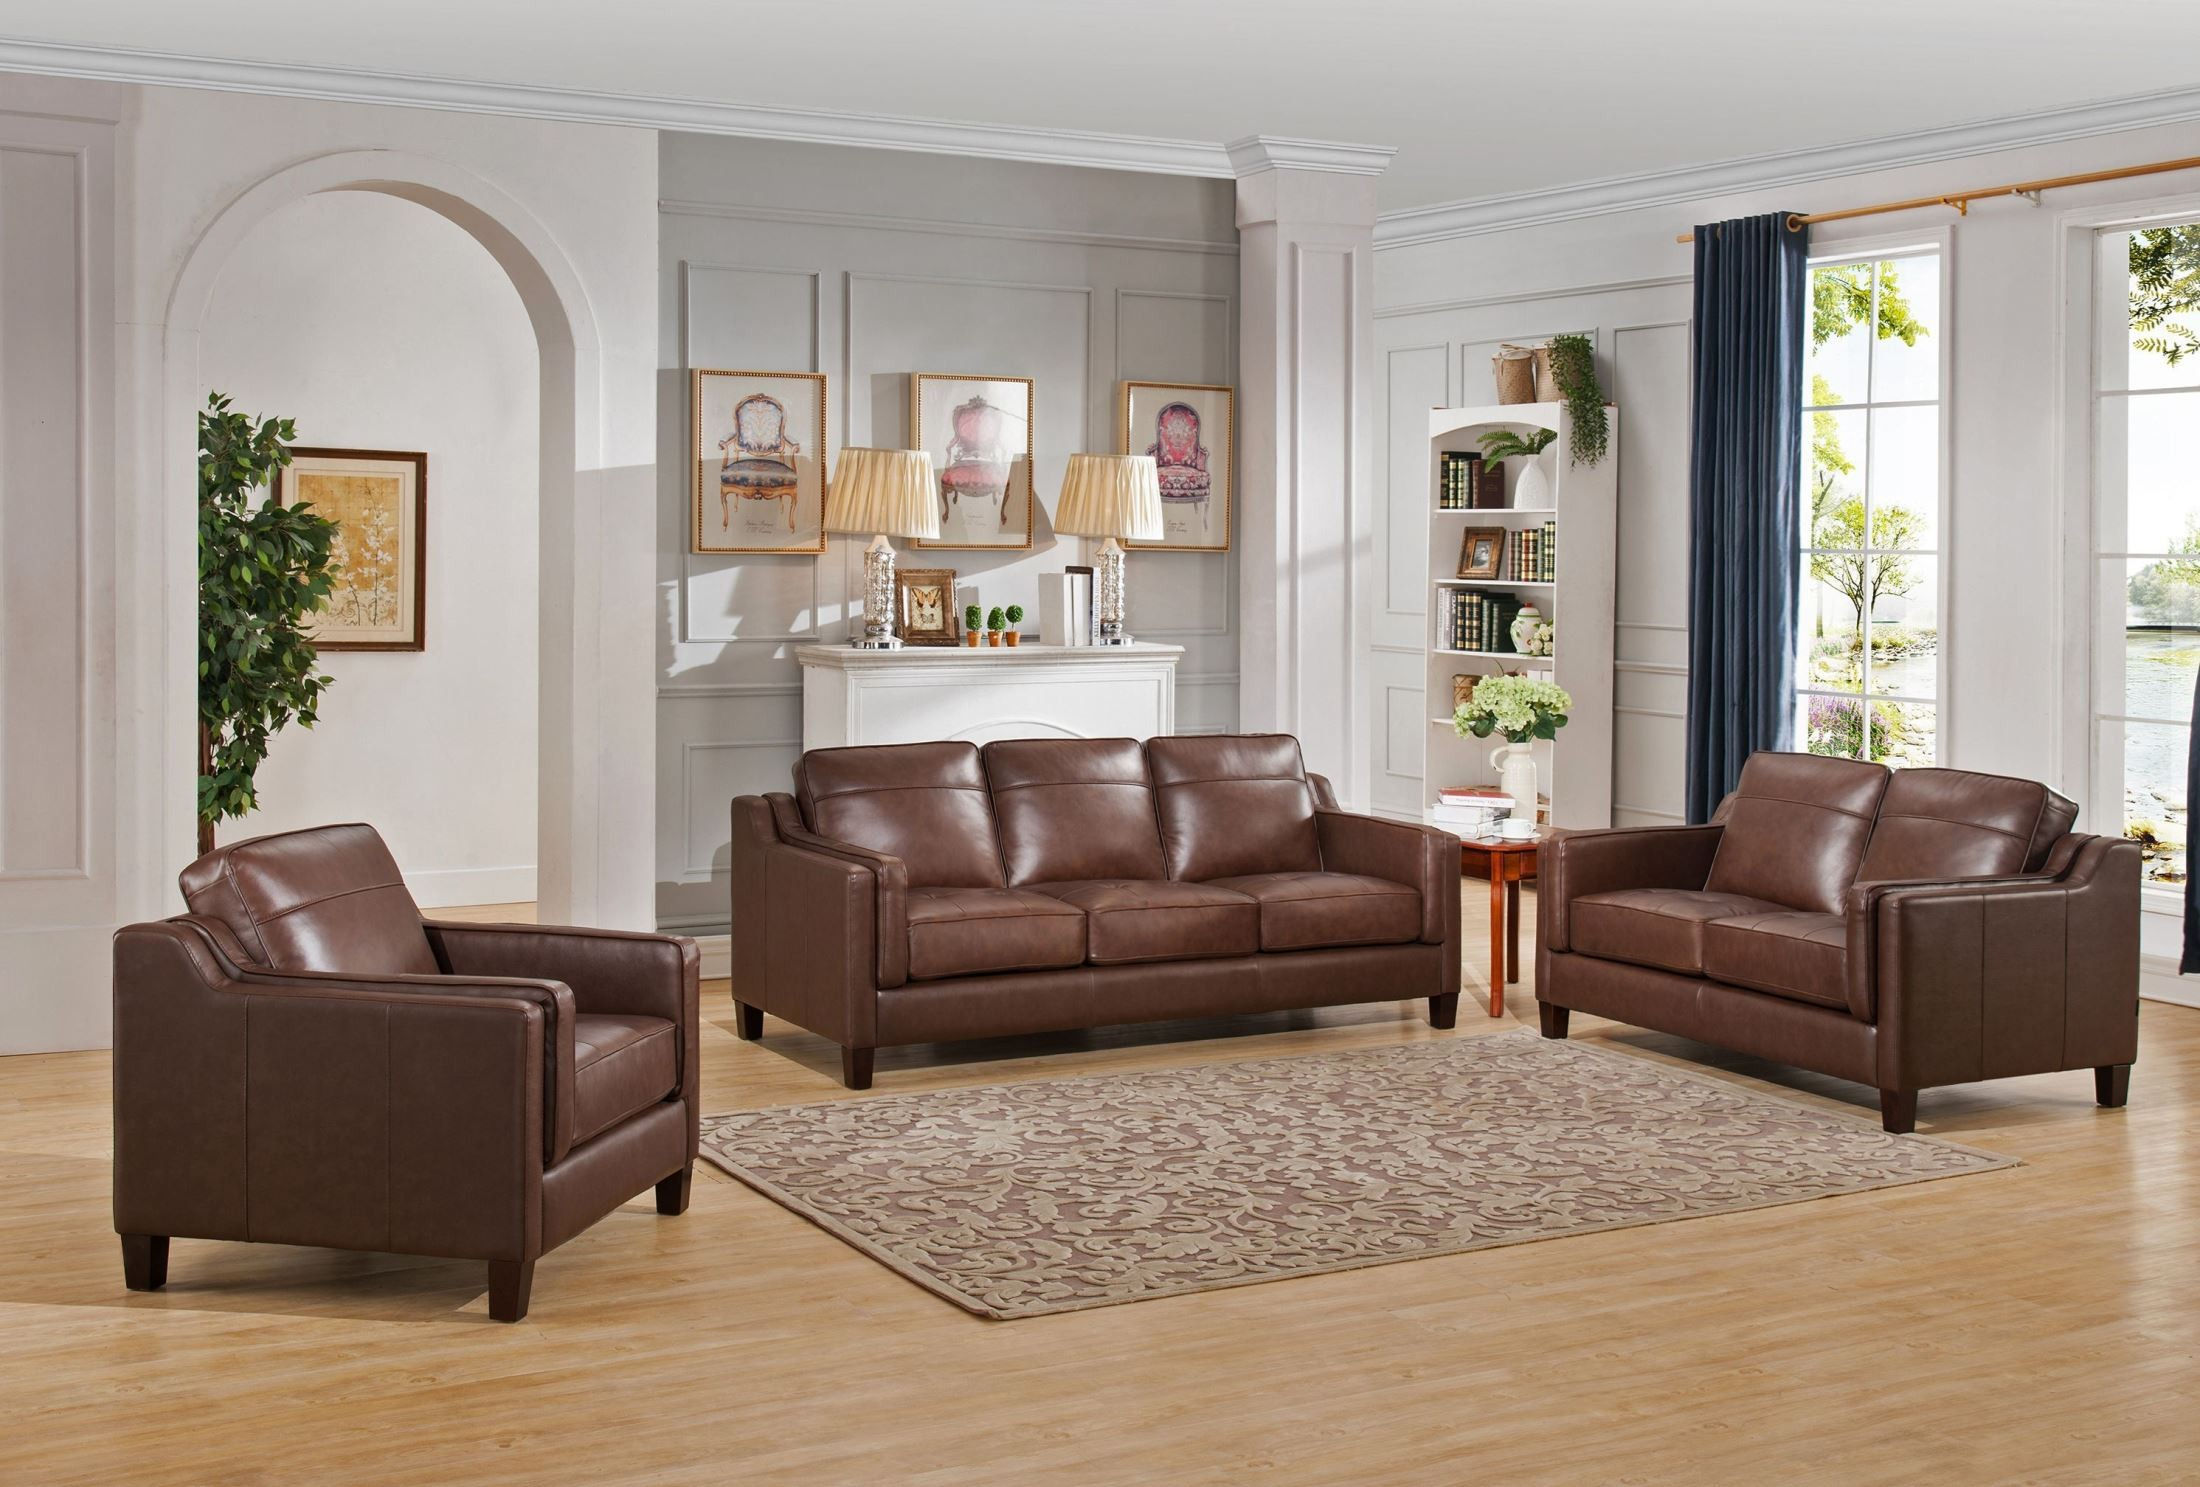 Acorn brown 3 piece leather living room set from amax leather coleman furniture for 8 piece living room set